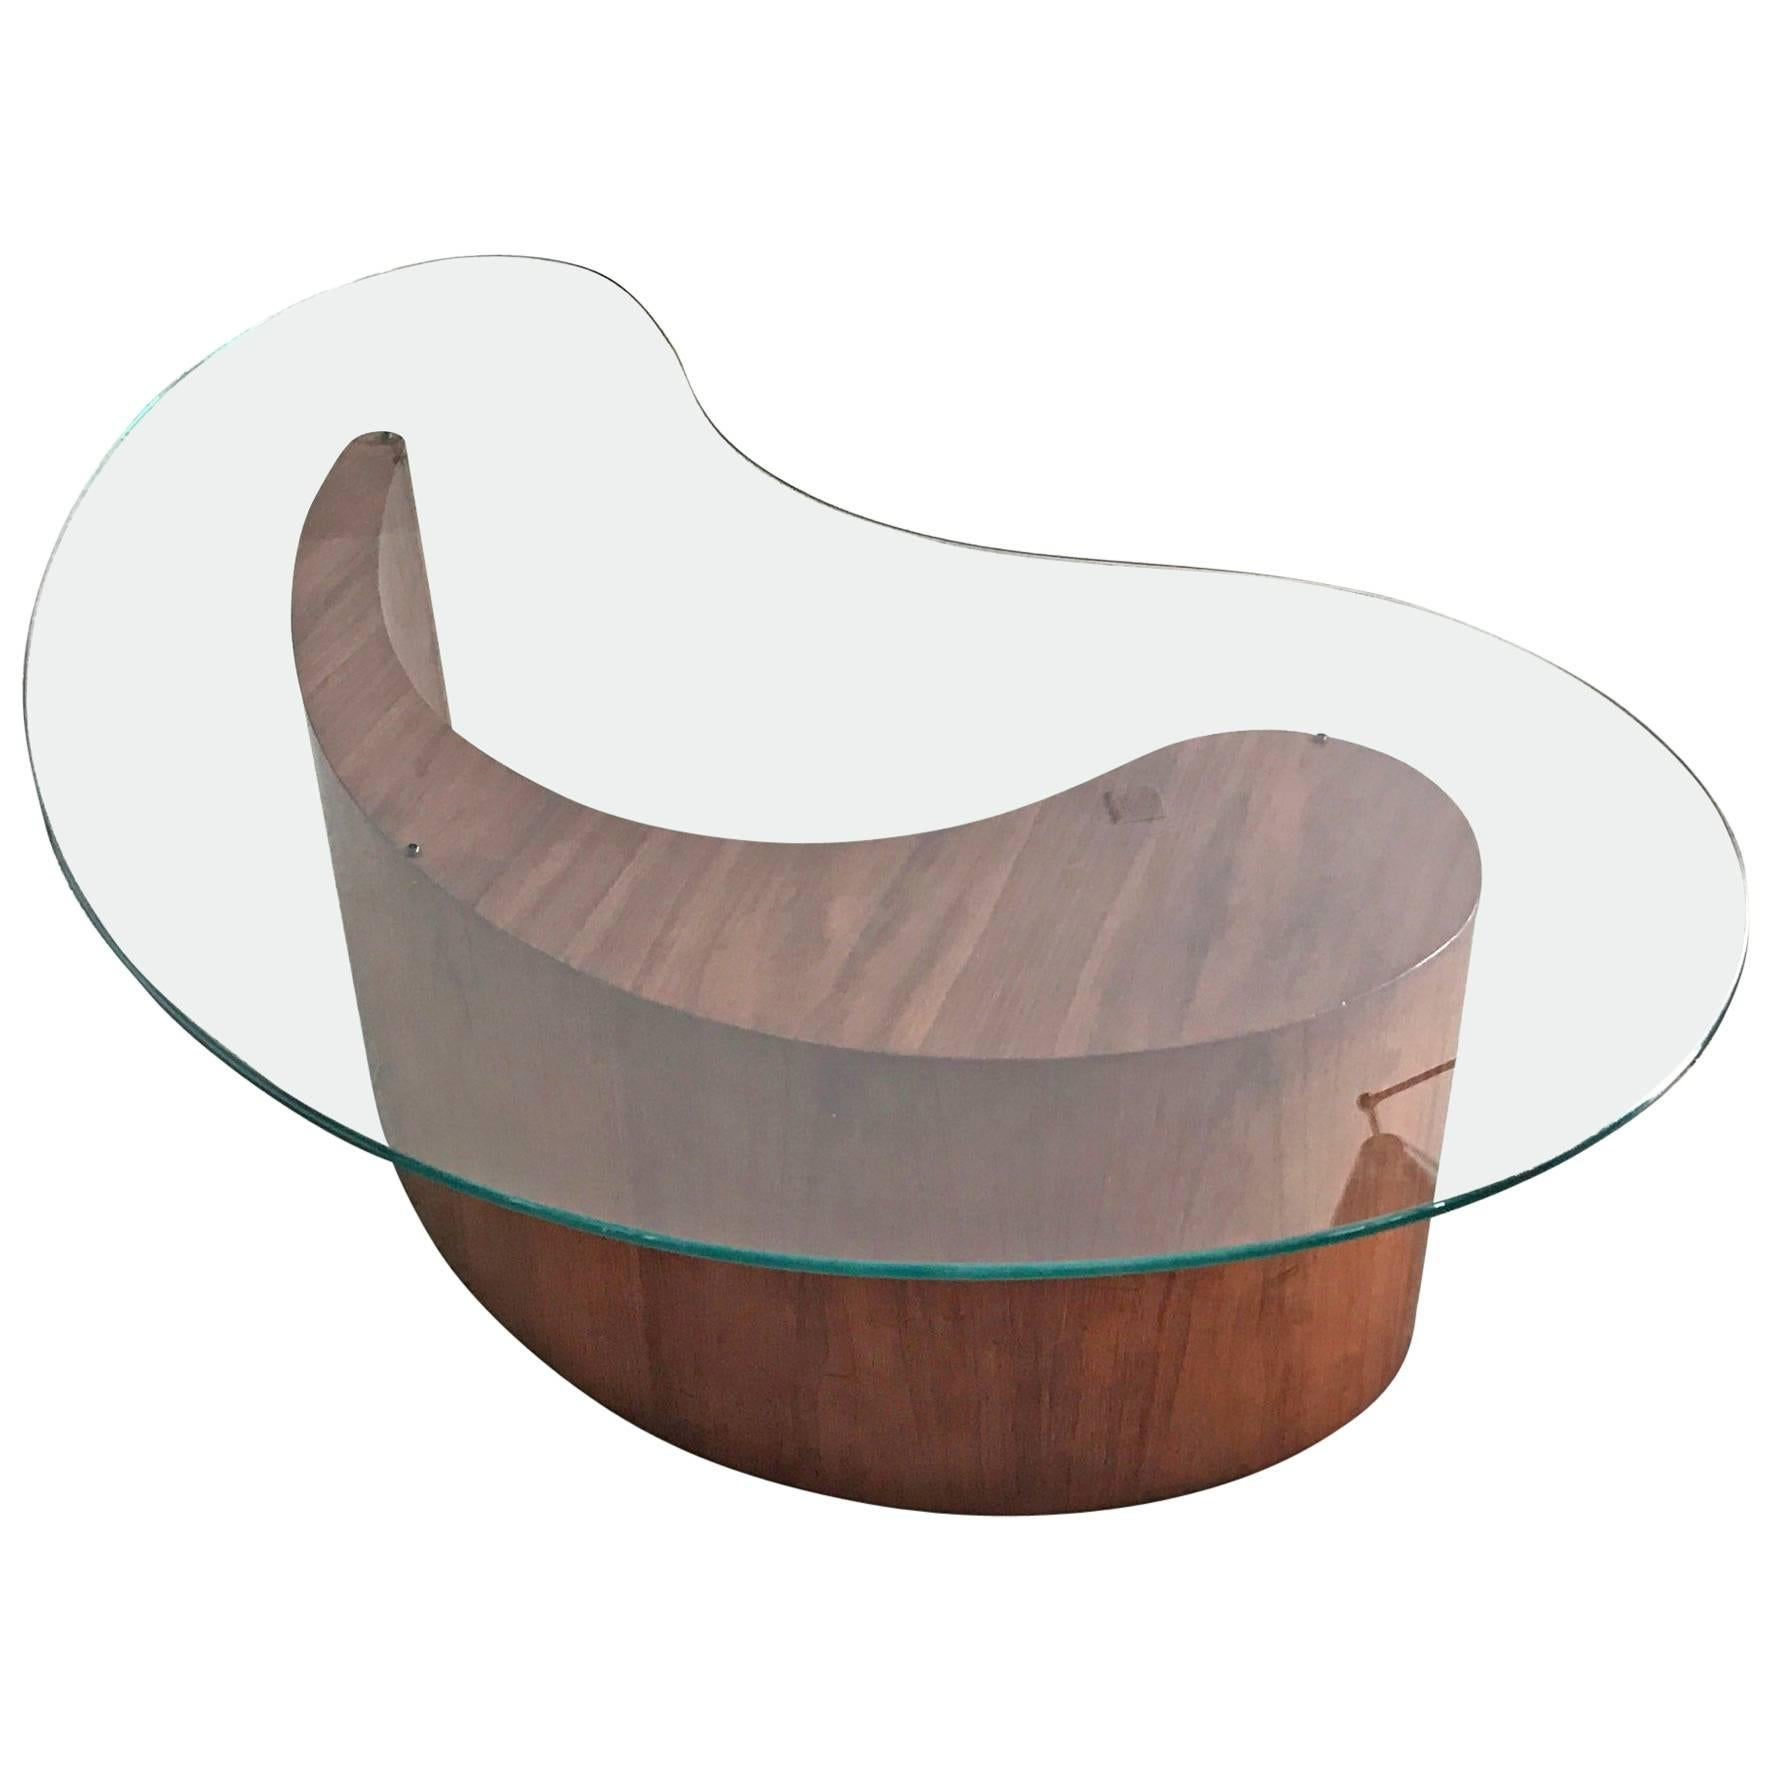 Kagan Style Biomorphic Coffee Table For Sale at 1stdibs